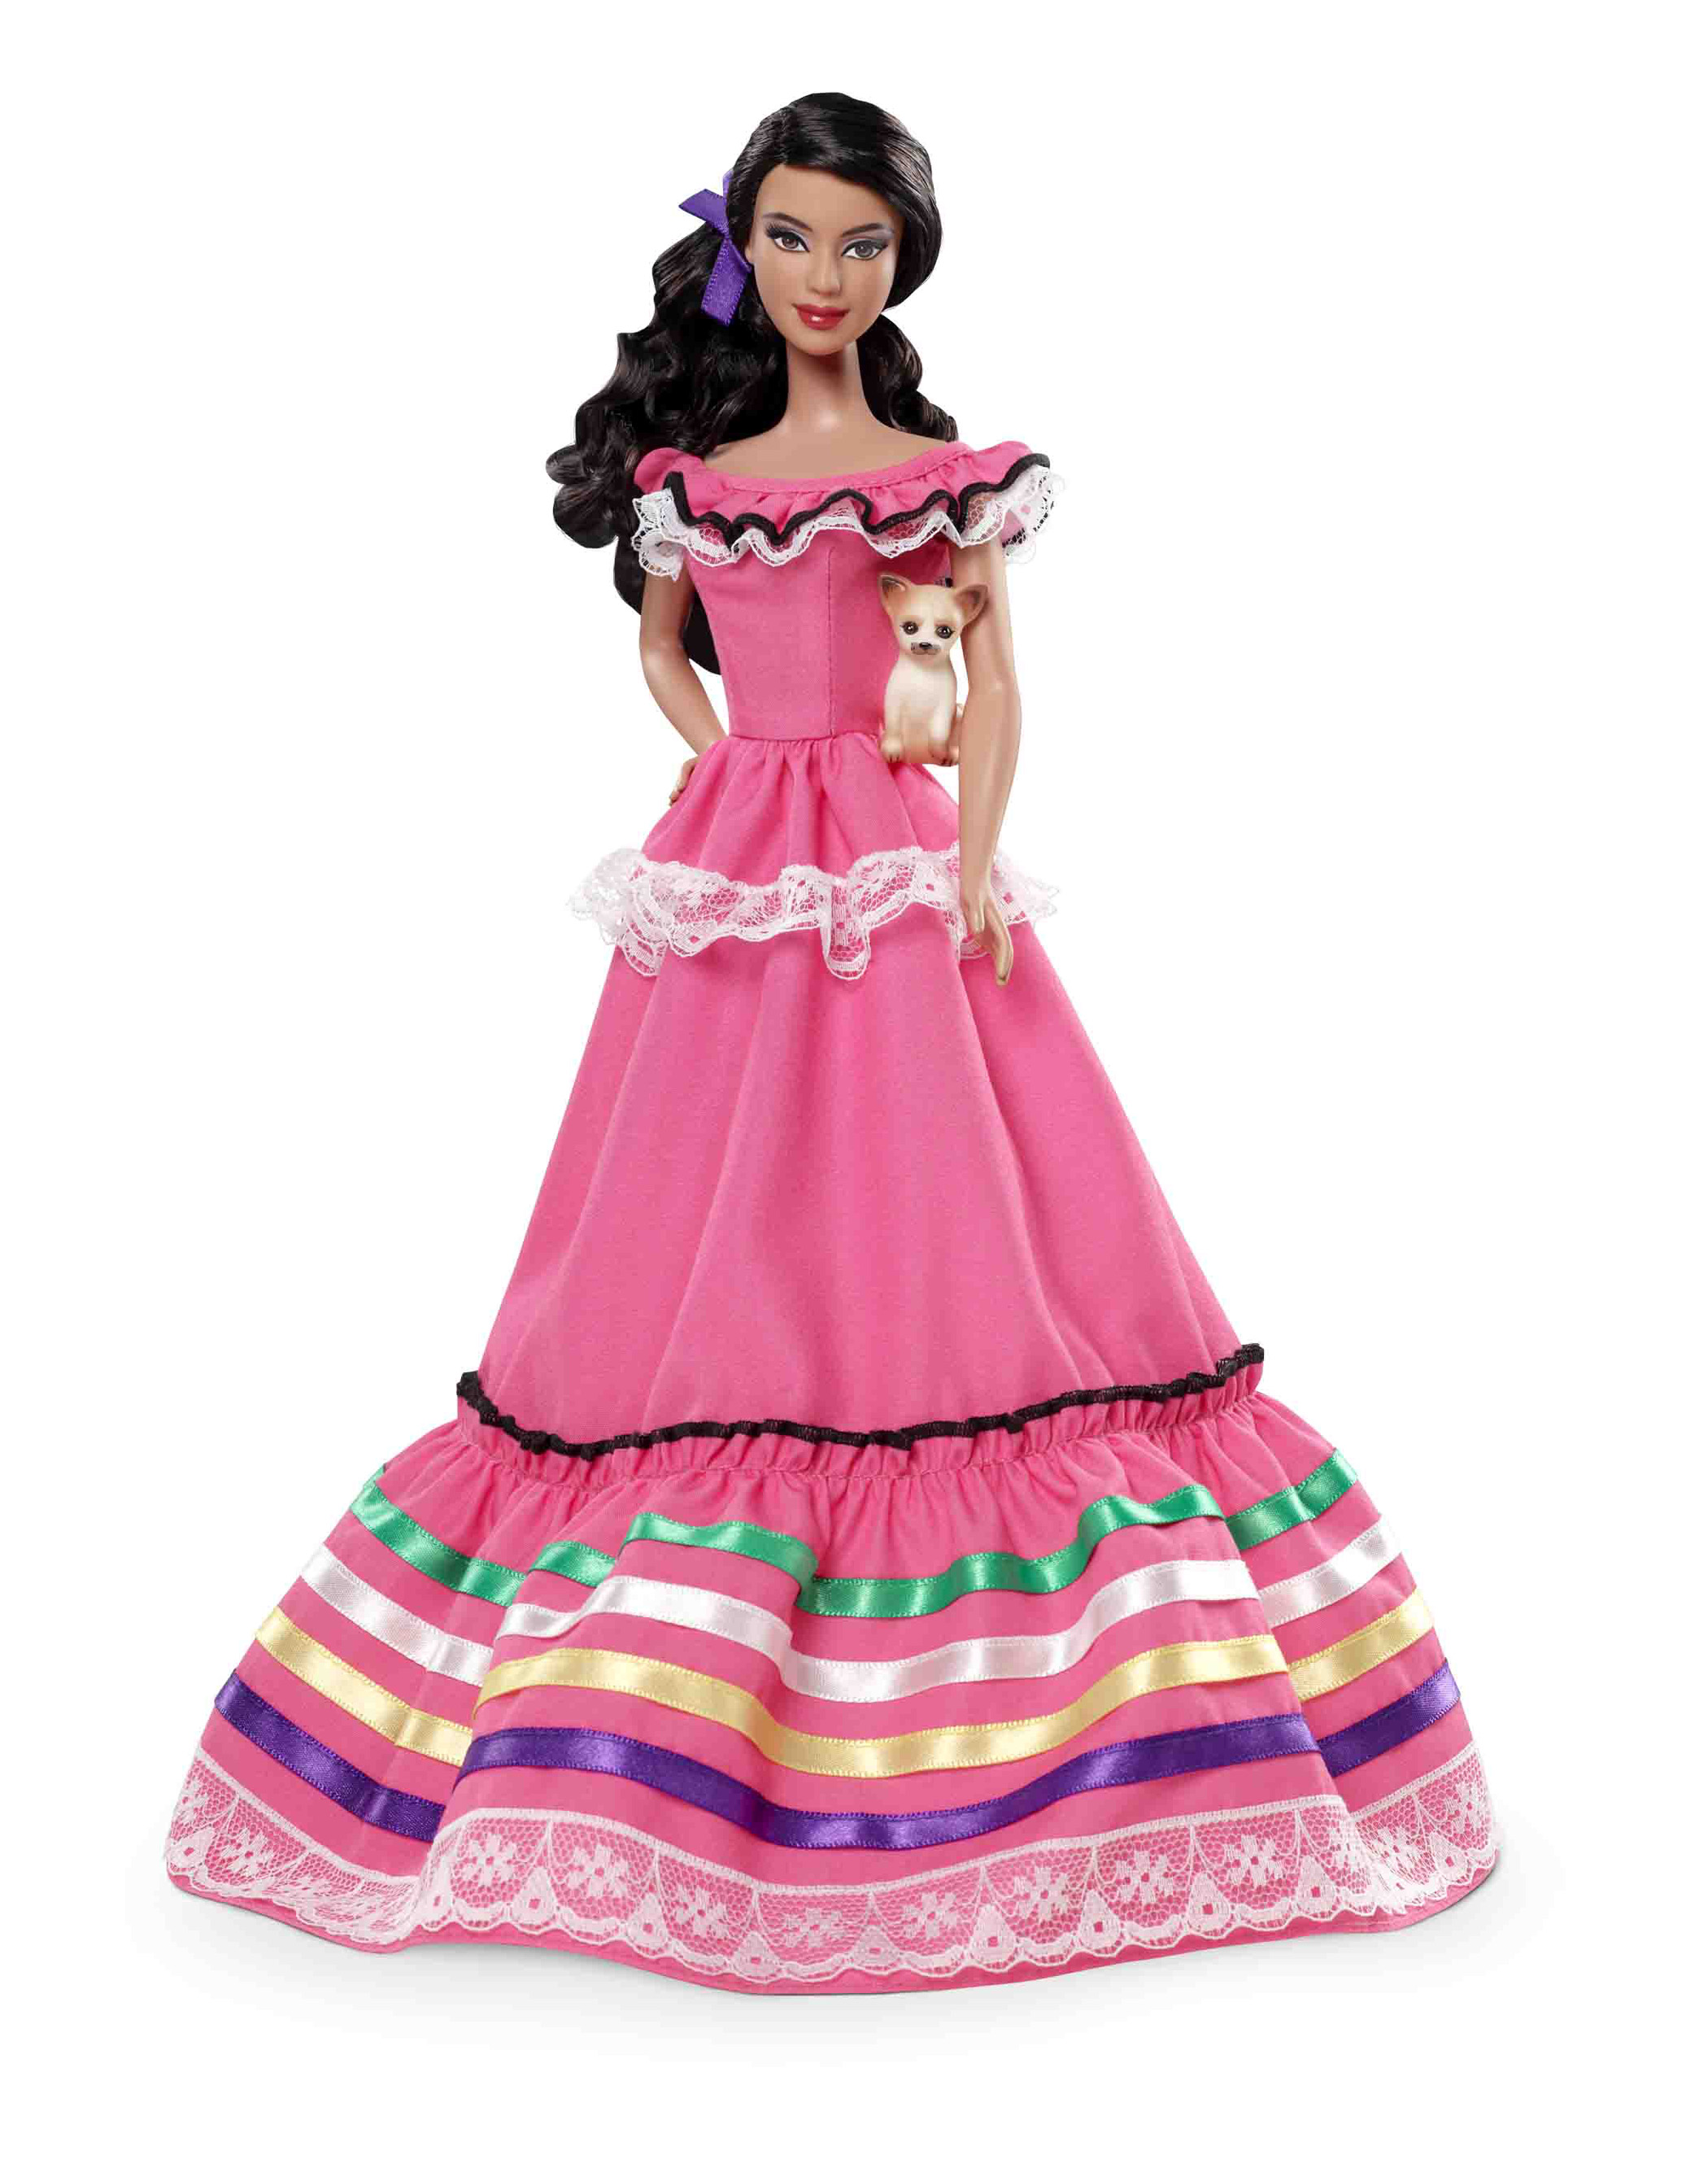 Mexico barbie cruel stereotype or celebrating cultural diversity